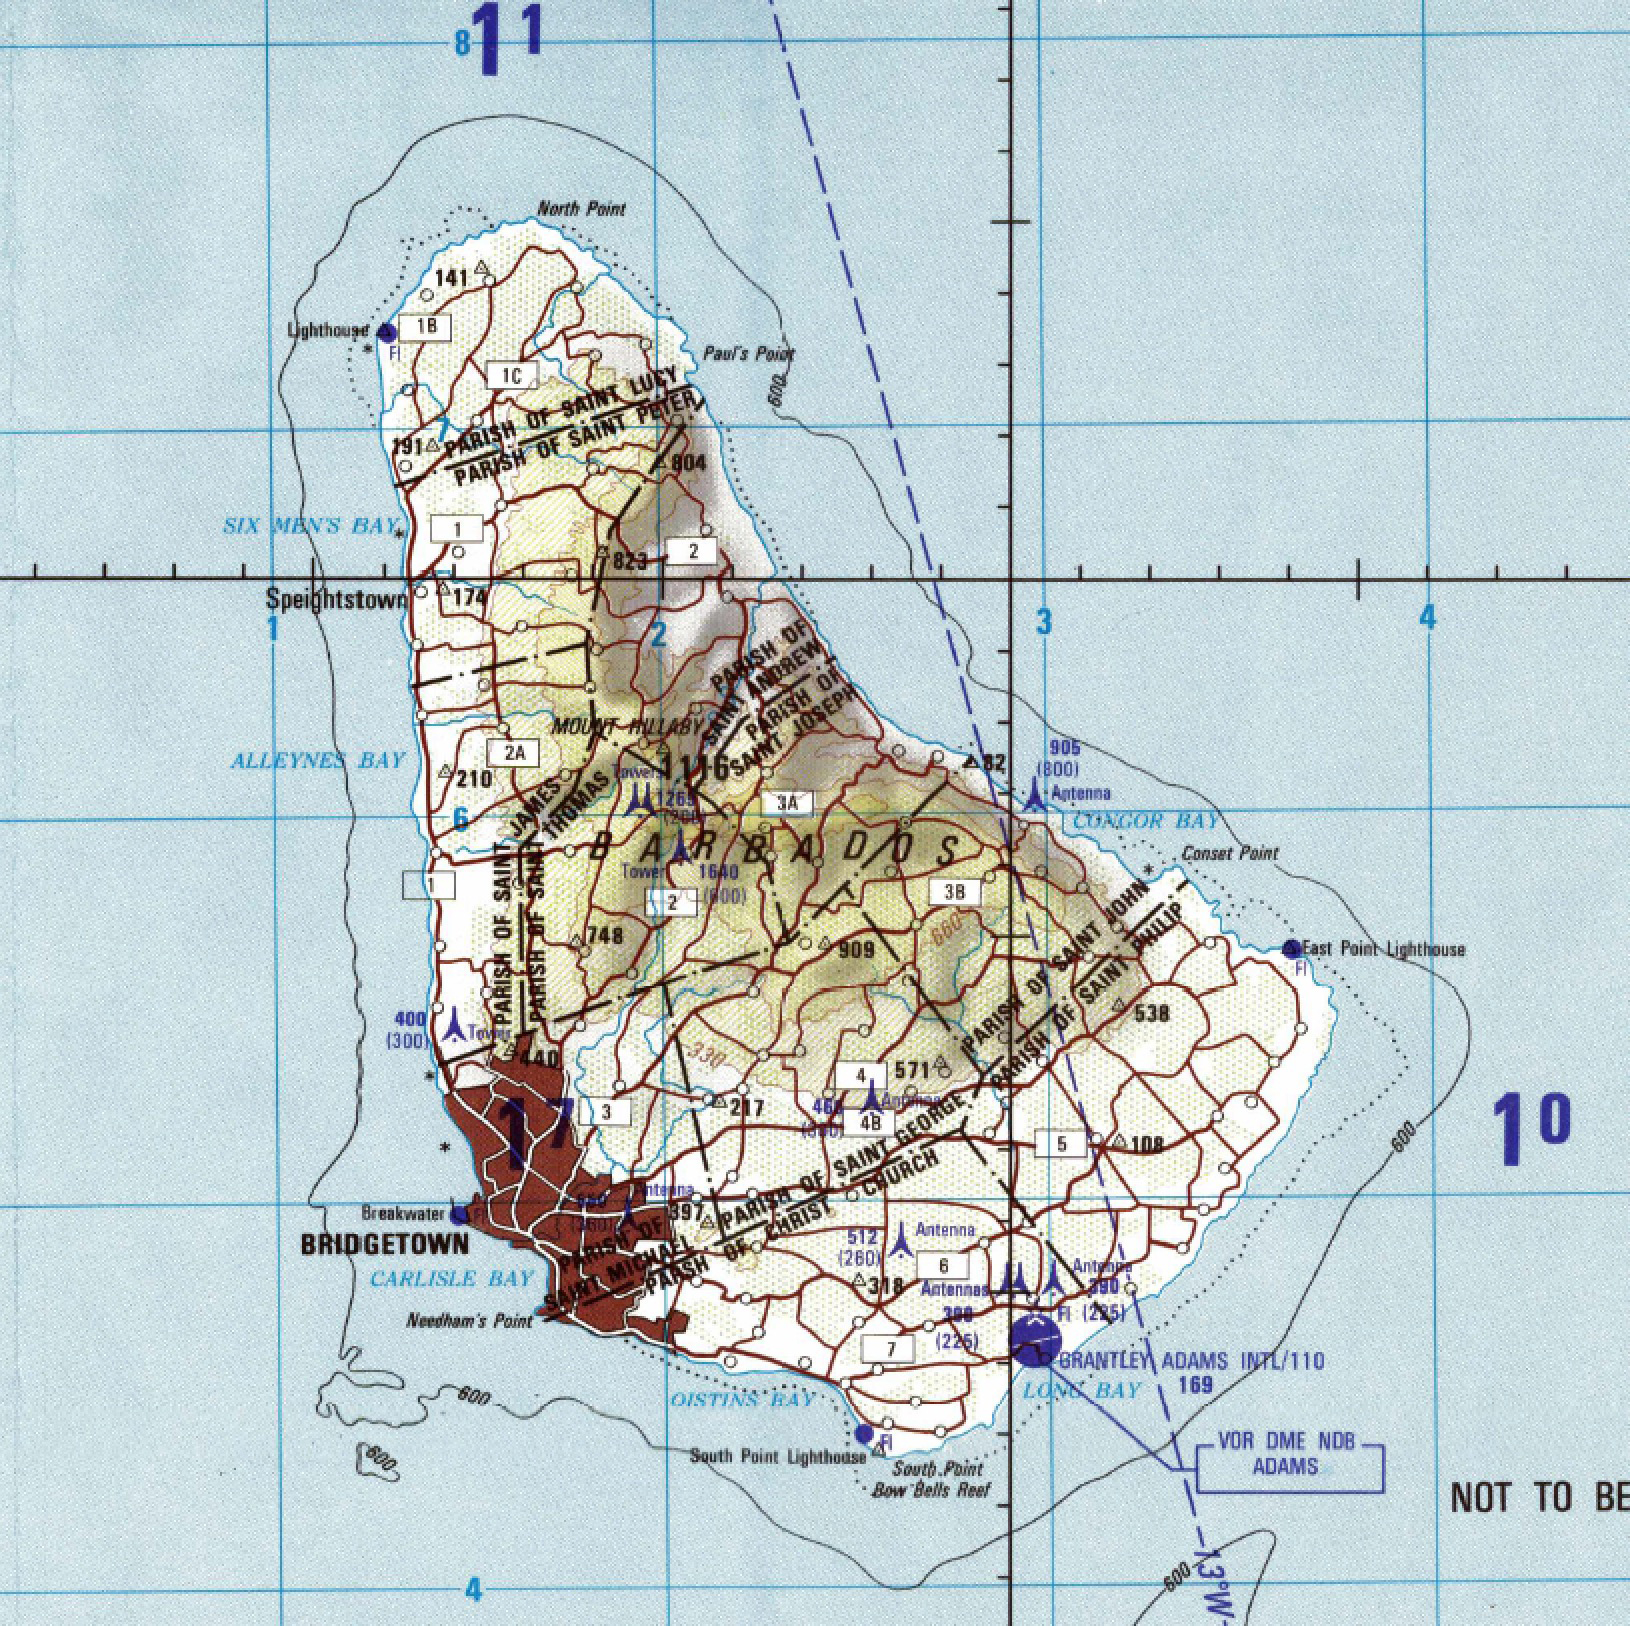 Hurricane janet barbados 1955 1980 map of barbados publicscrutiny Choice Image